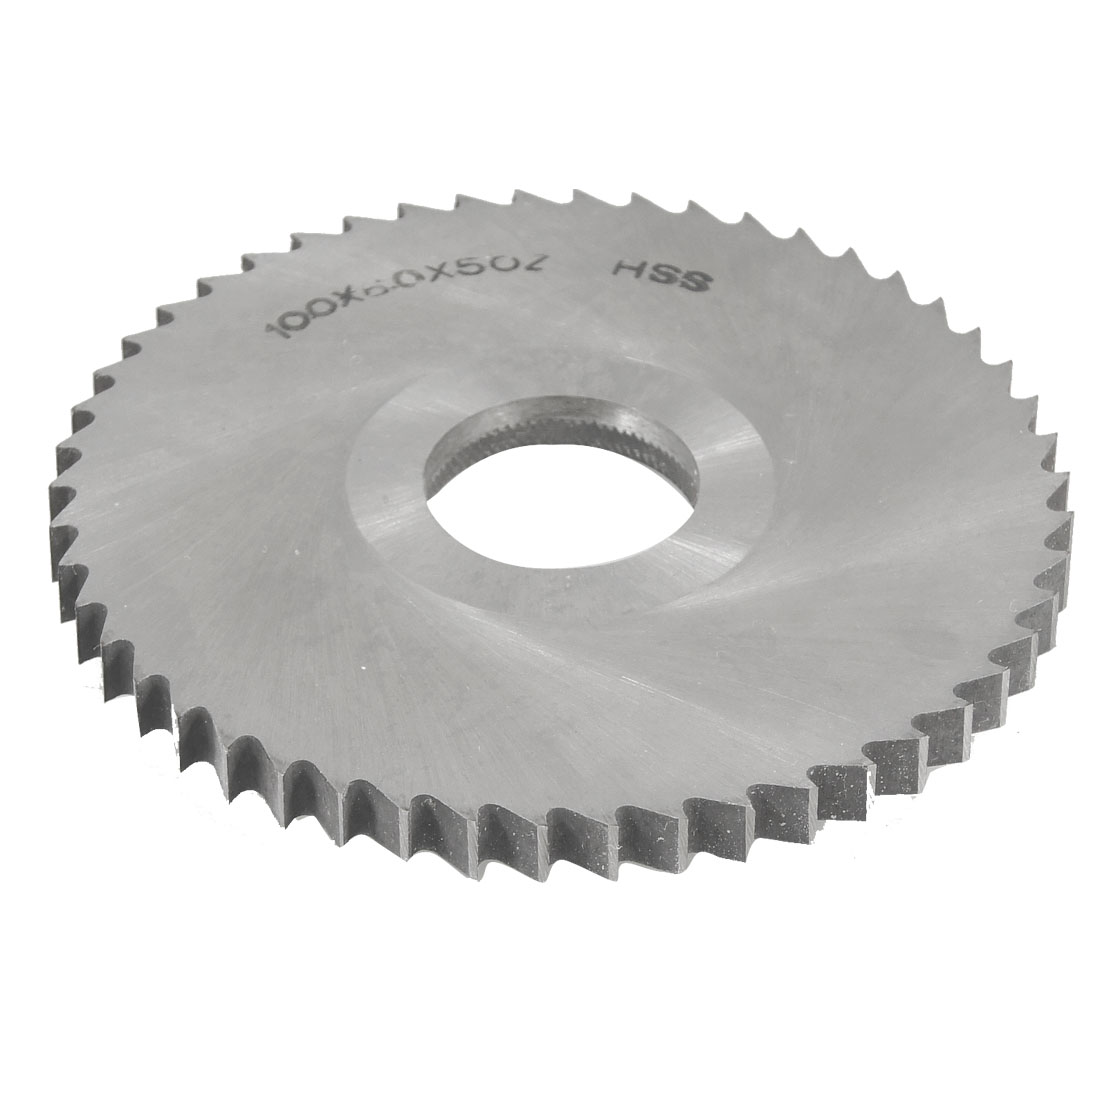 Silver Tone HSS 50T Slitting Saw 100mm x 6mm x 27mm